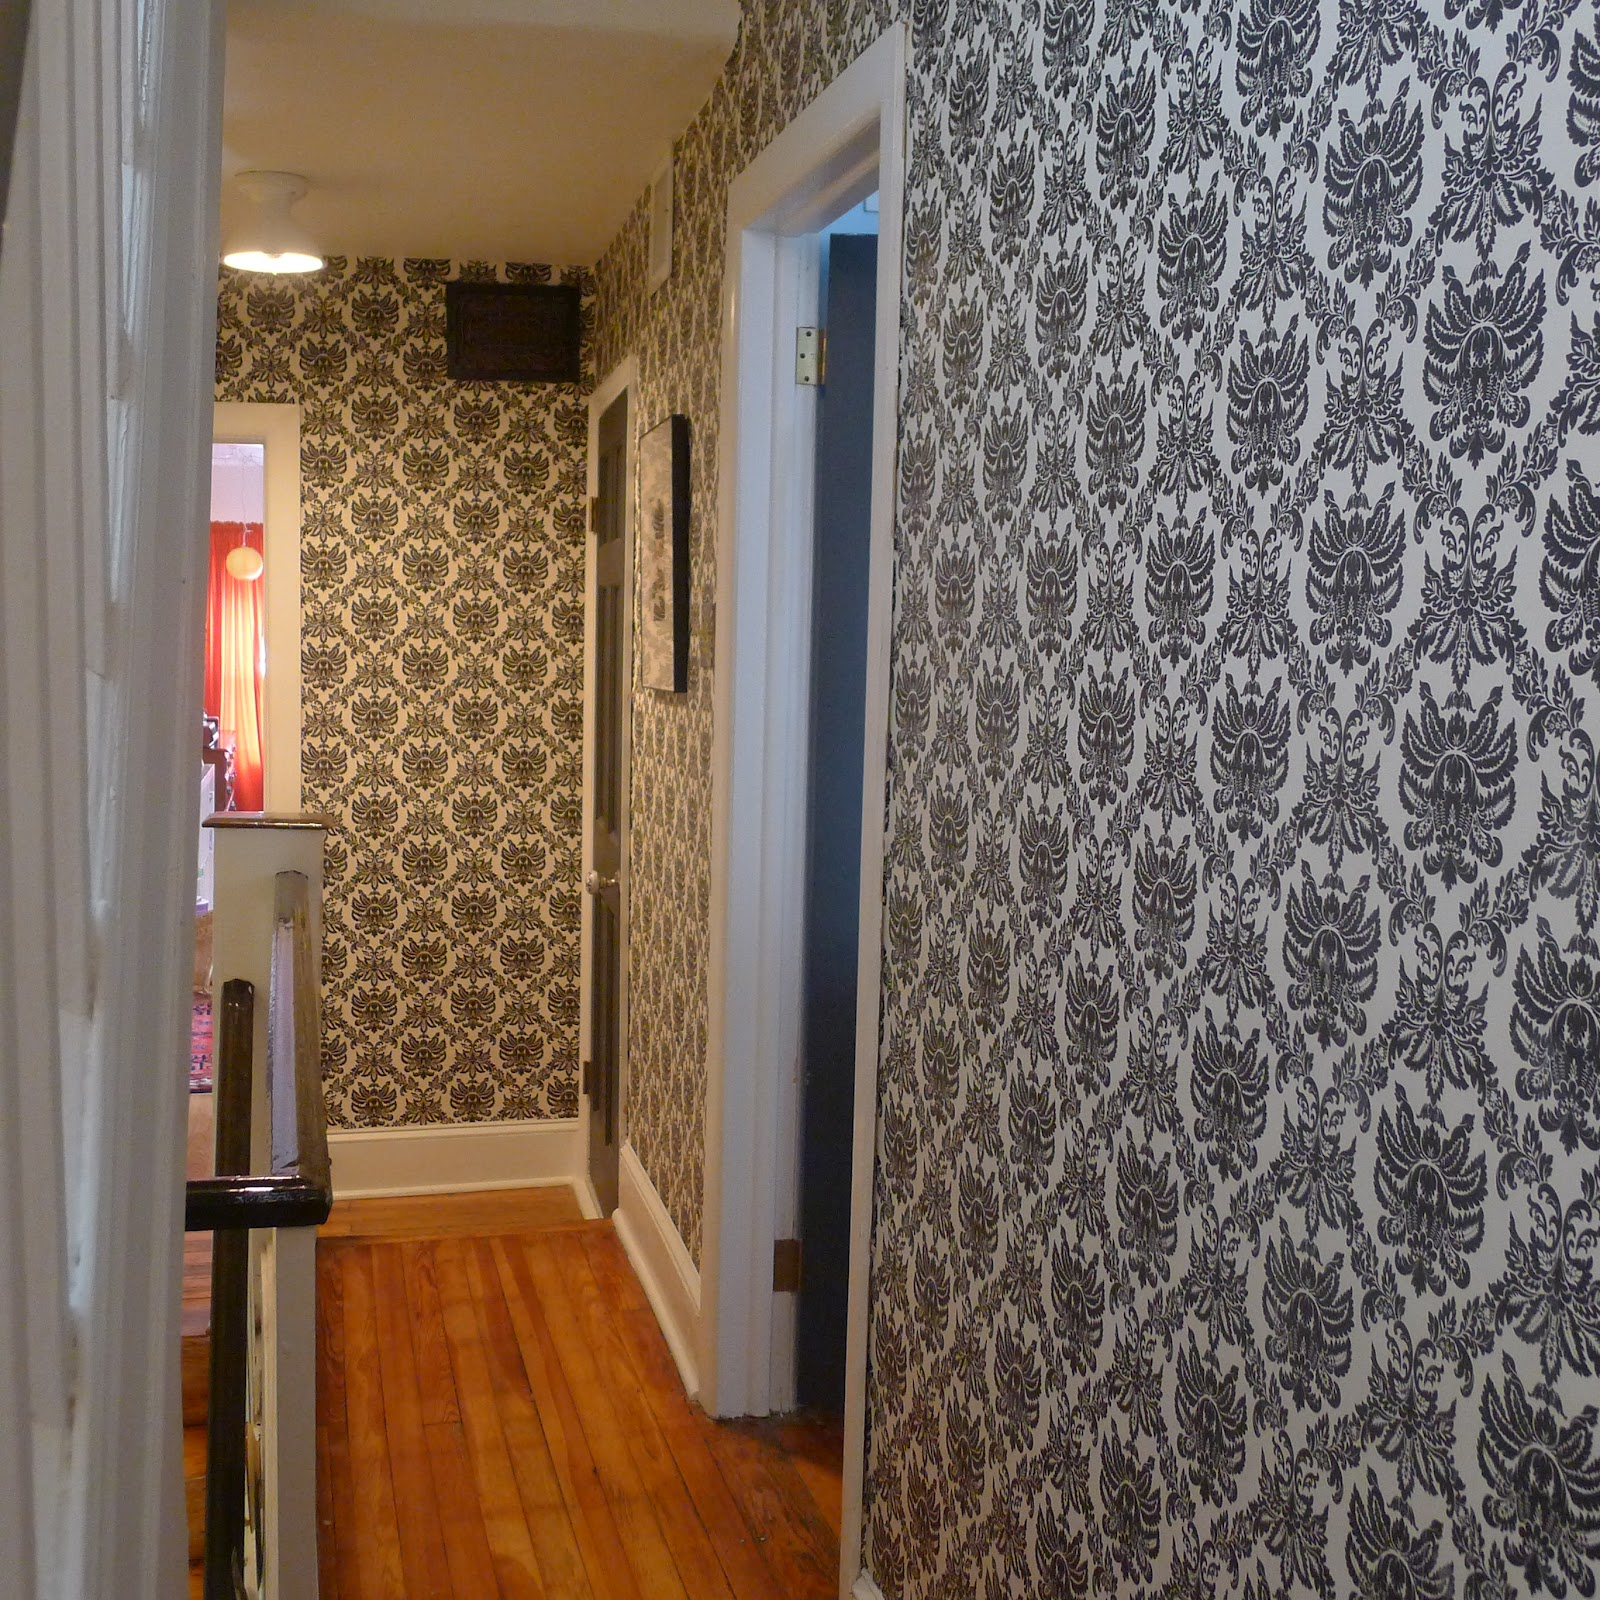 Wallpaper Designs For Hall : South philly renovation wallpaper in the hallway